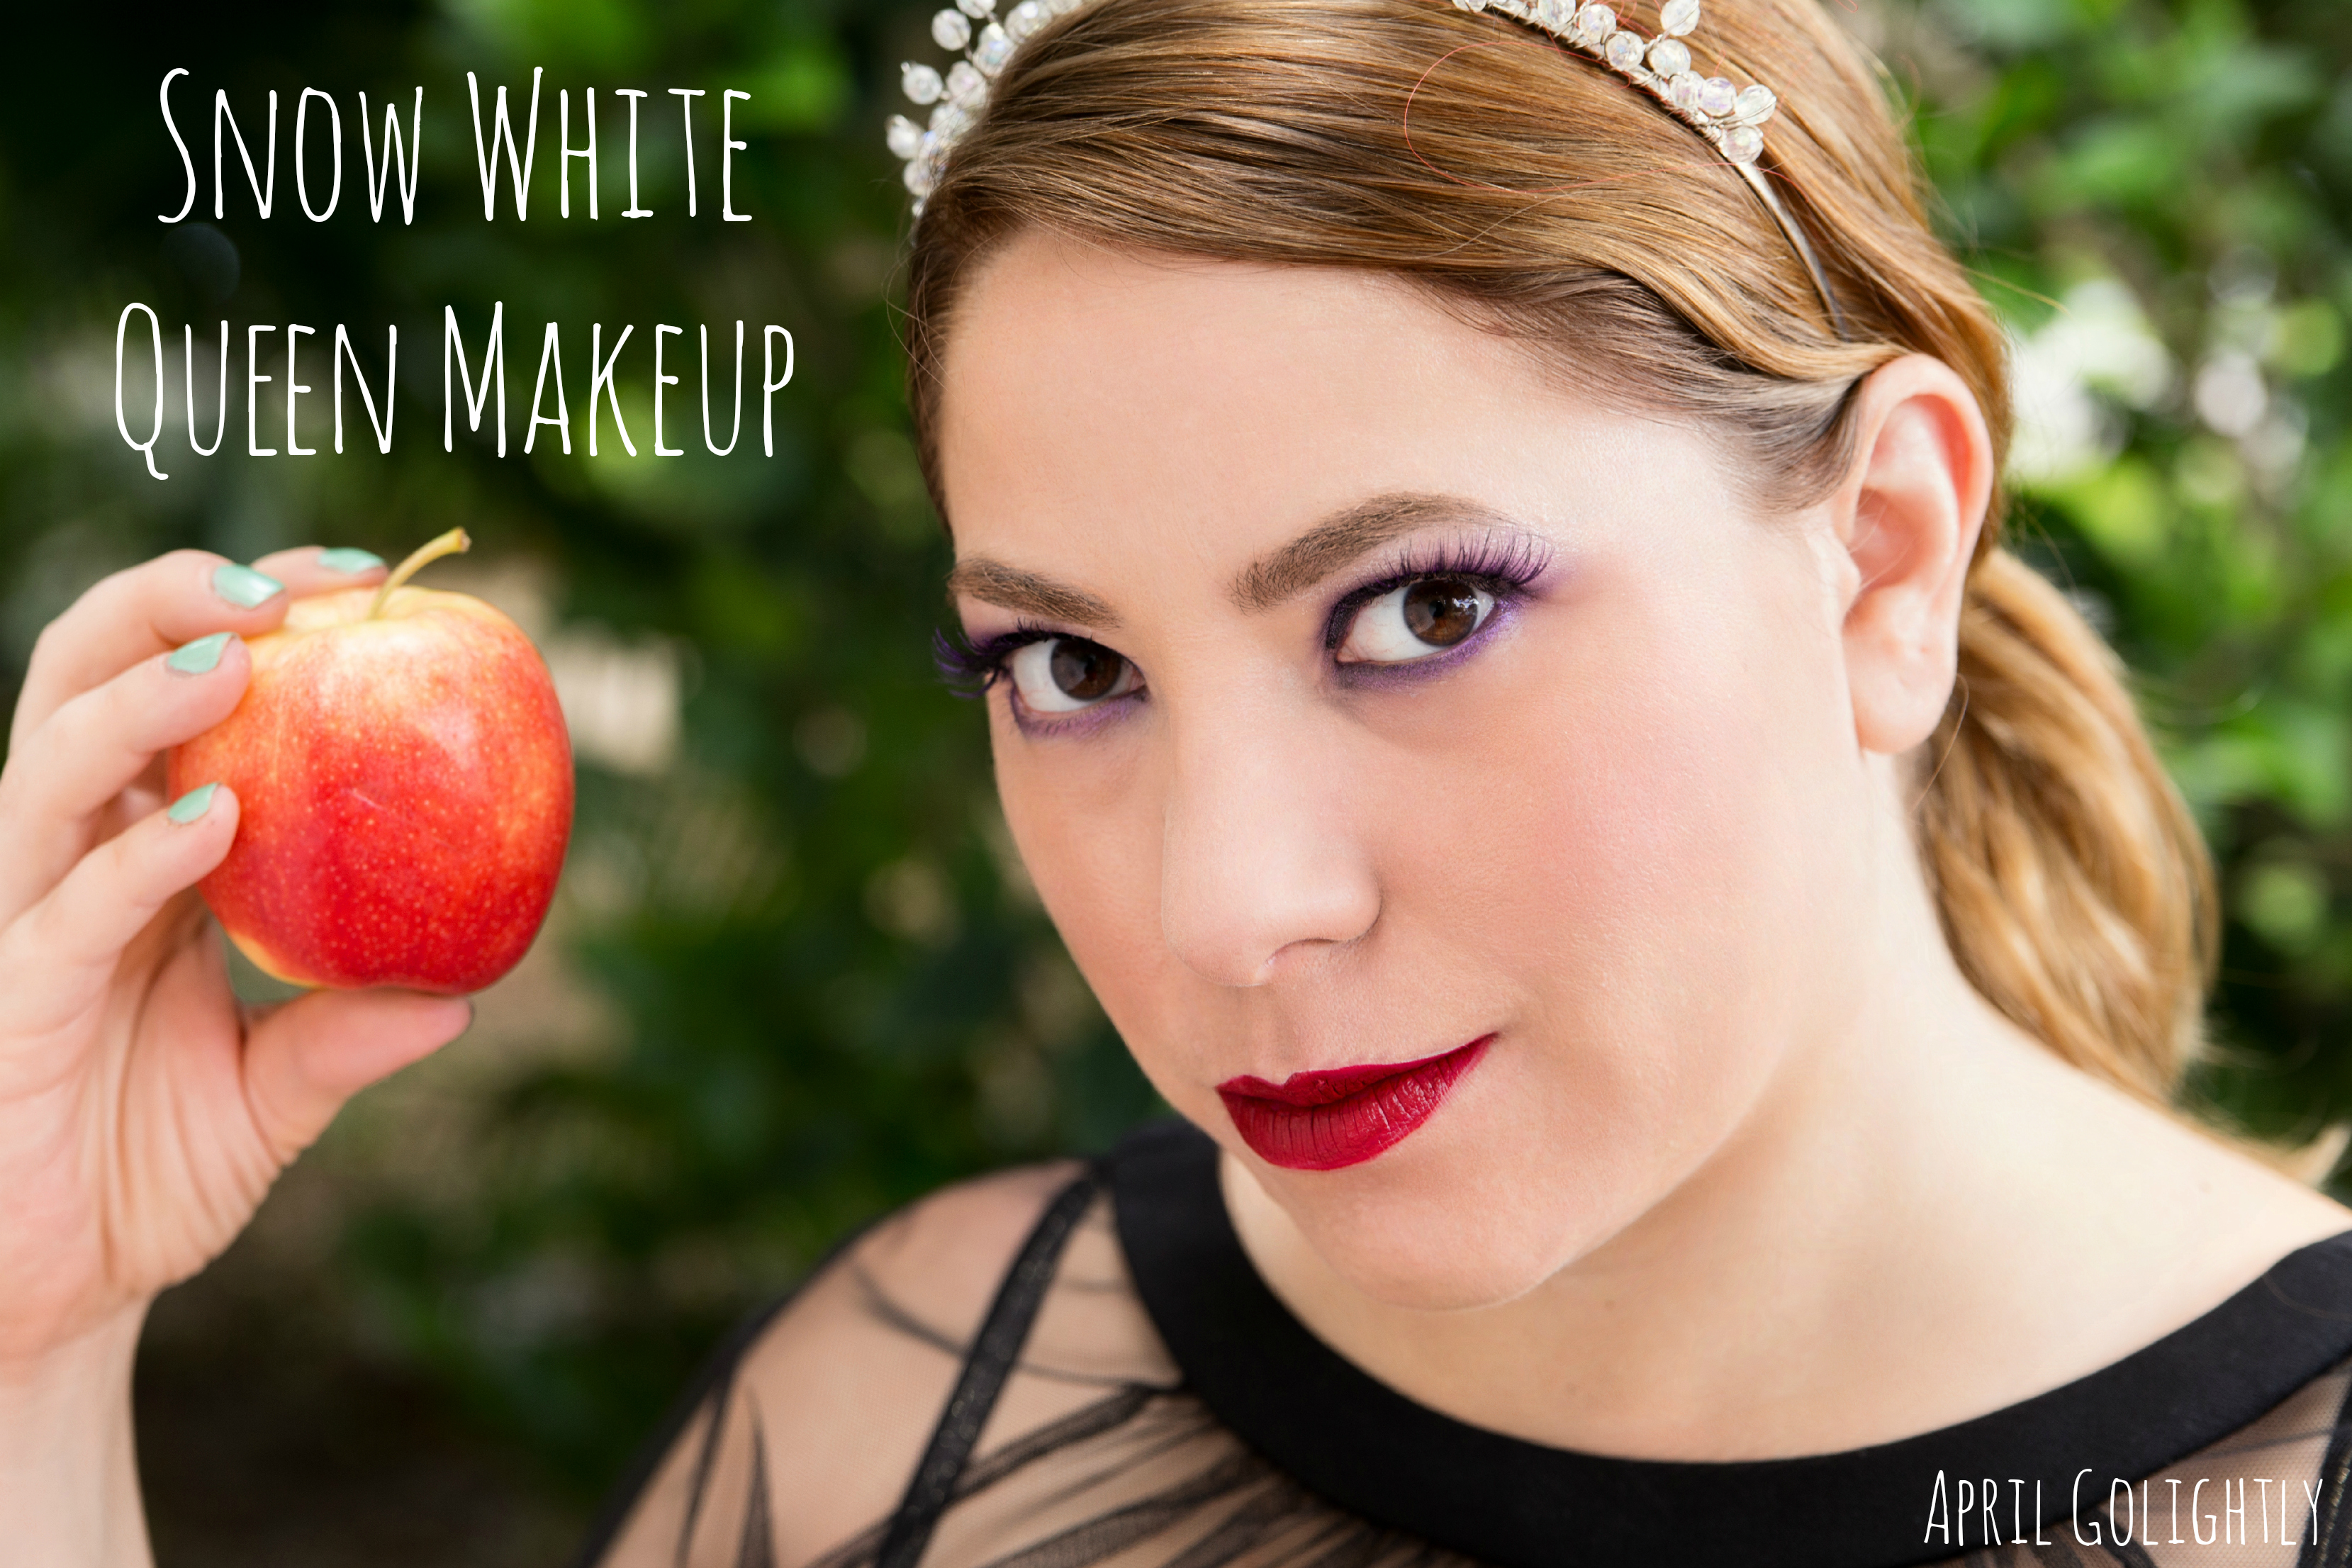 Snow White Queen Makeup u0026 Makeup Remover Wipes - April Golightly